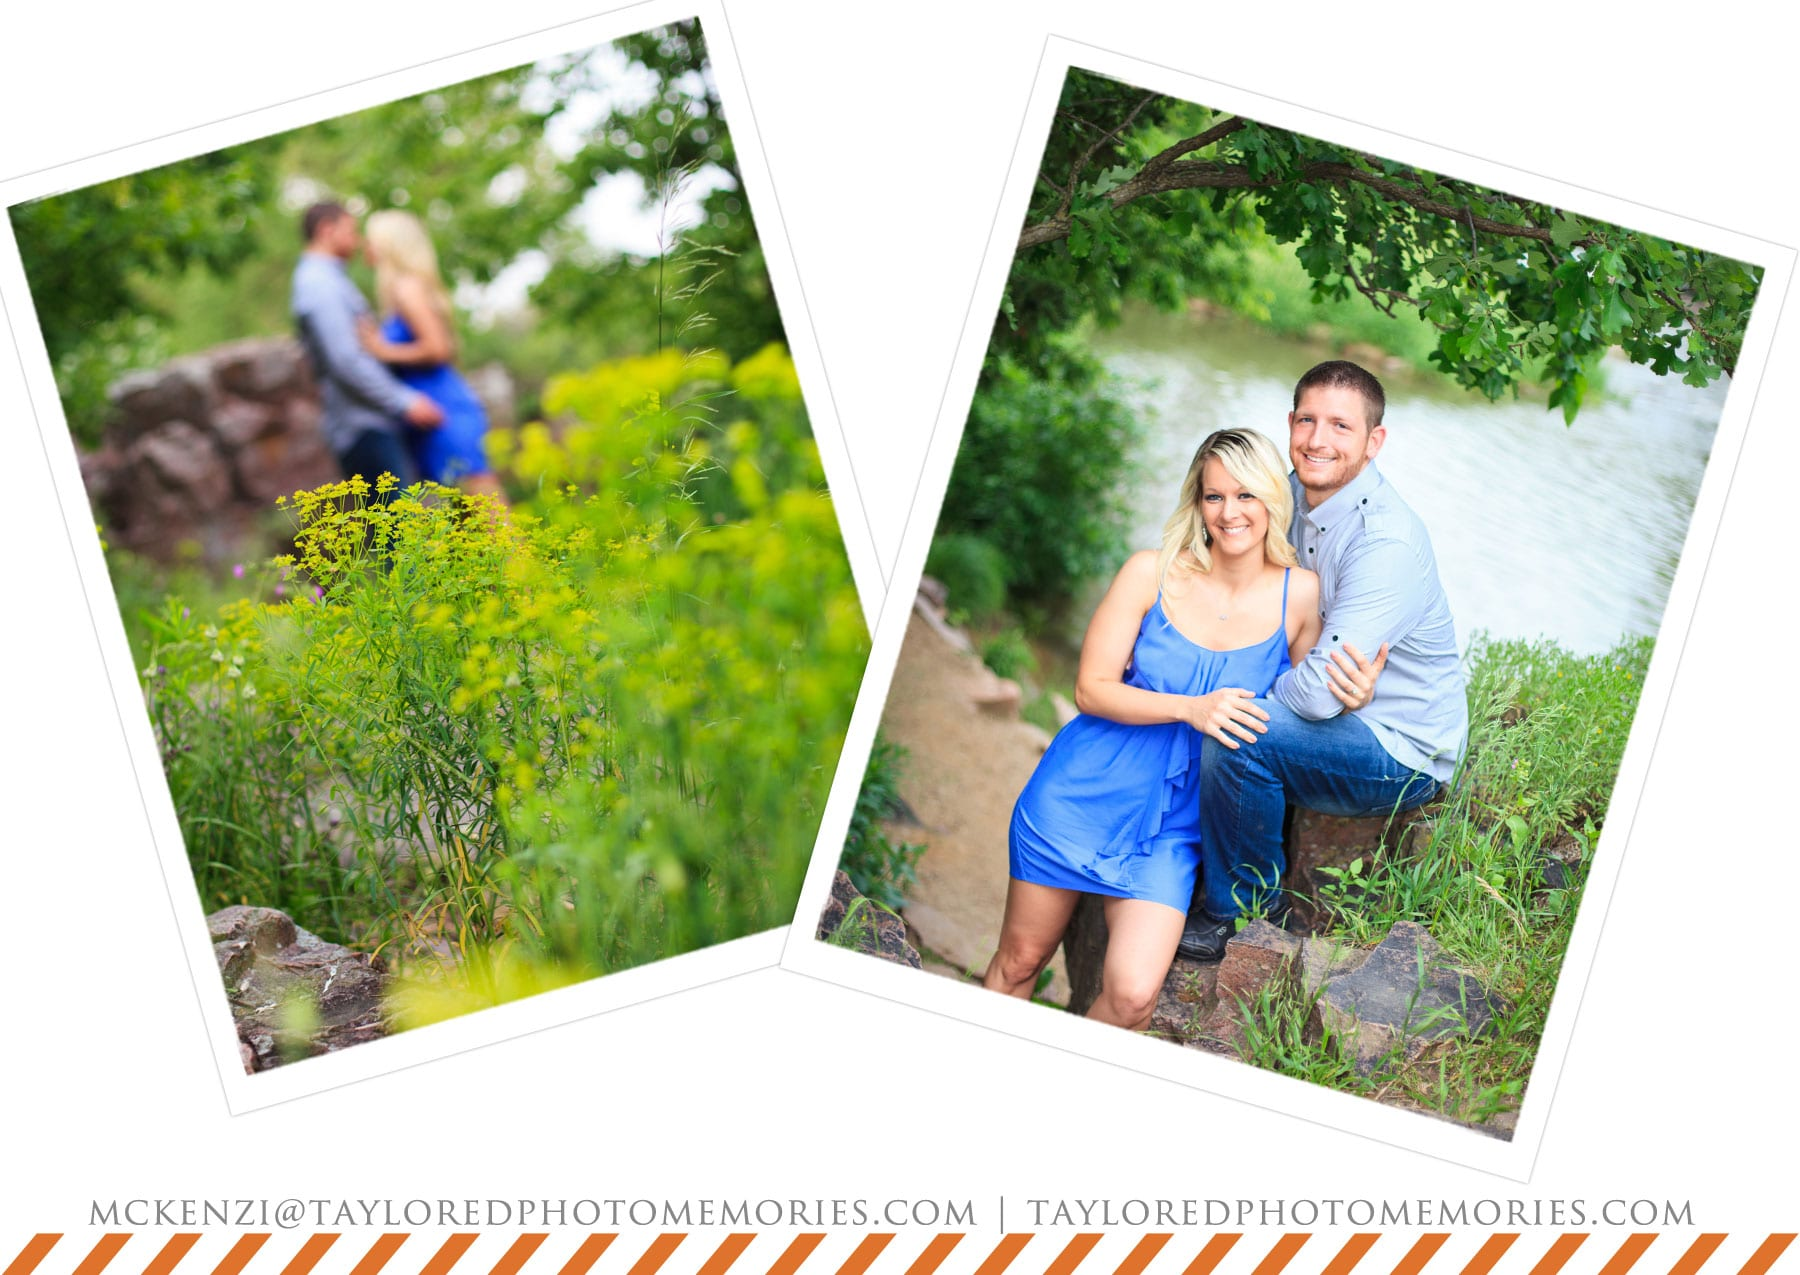 taylored photo memories | south dakota wedding photographer | palisades park engagement session